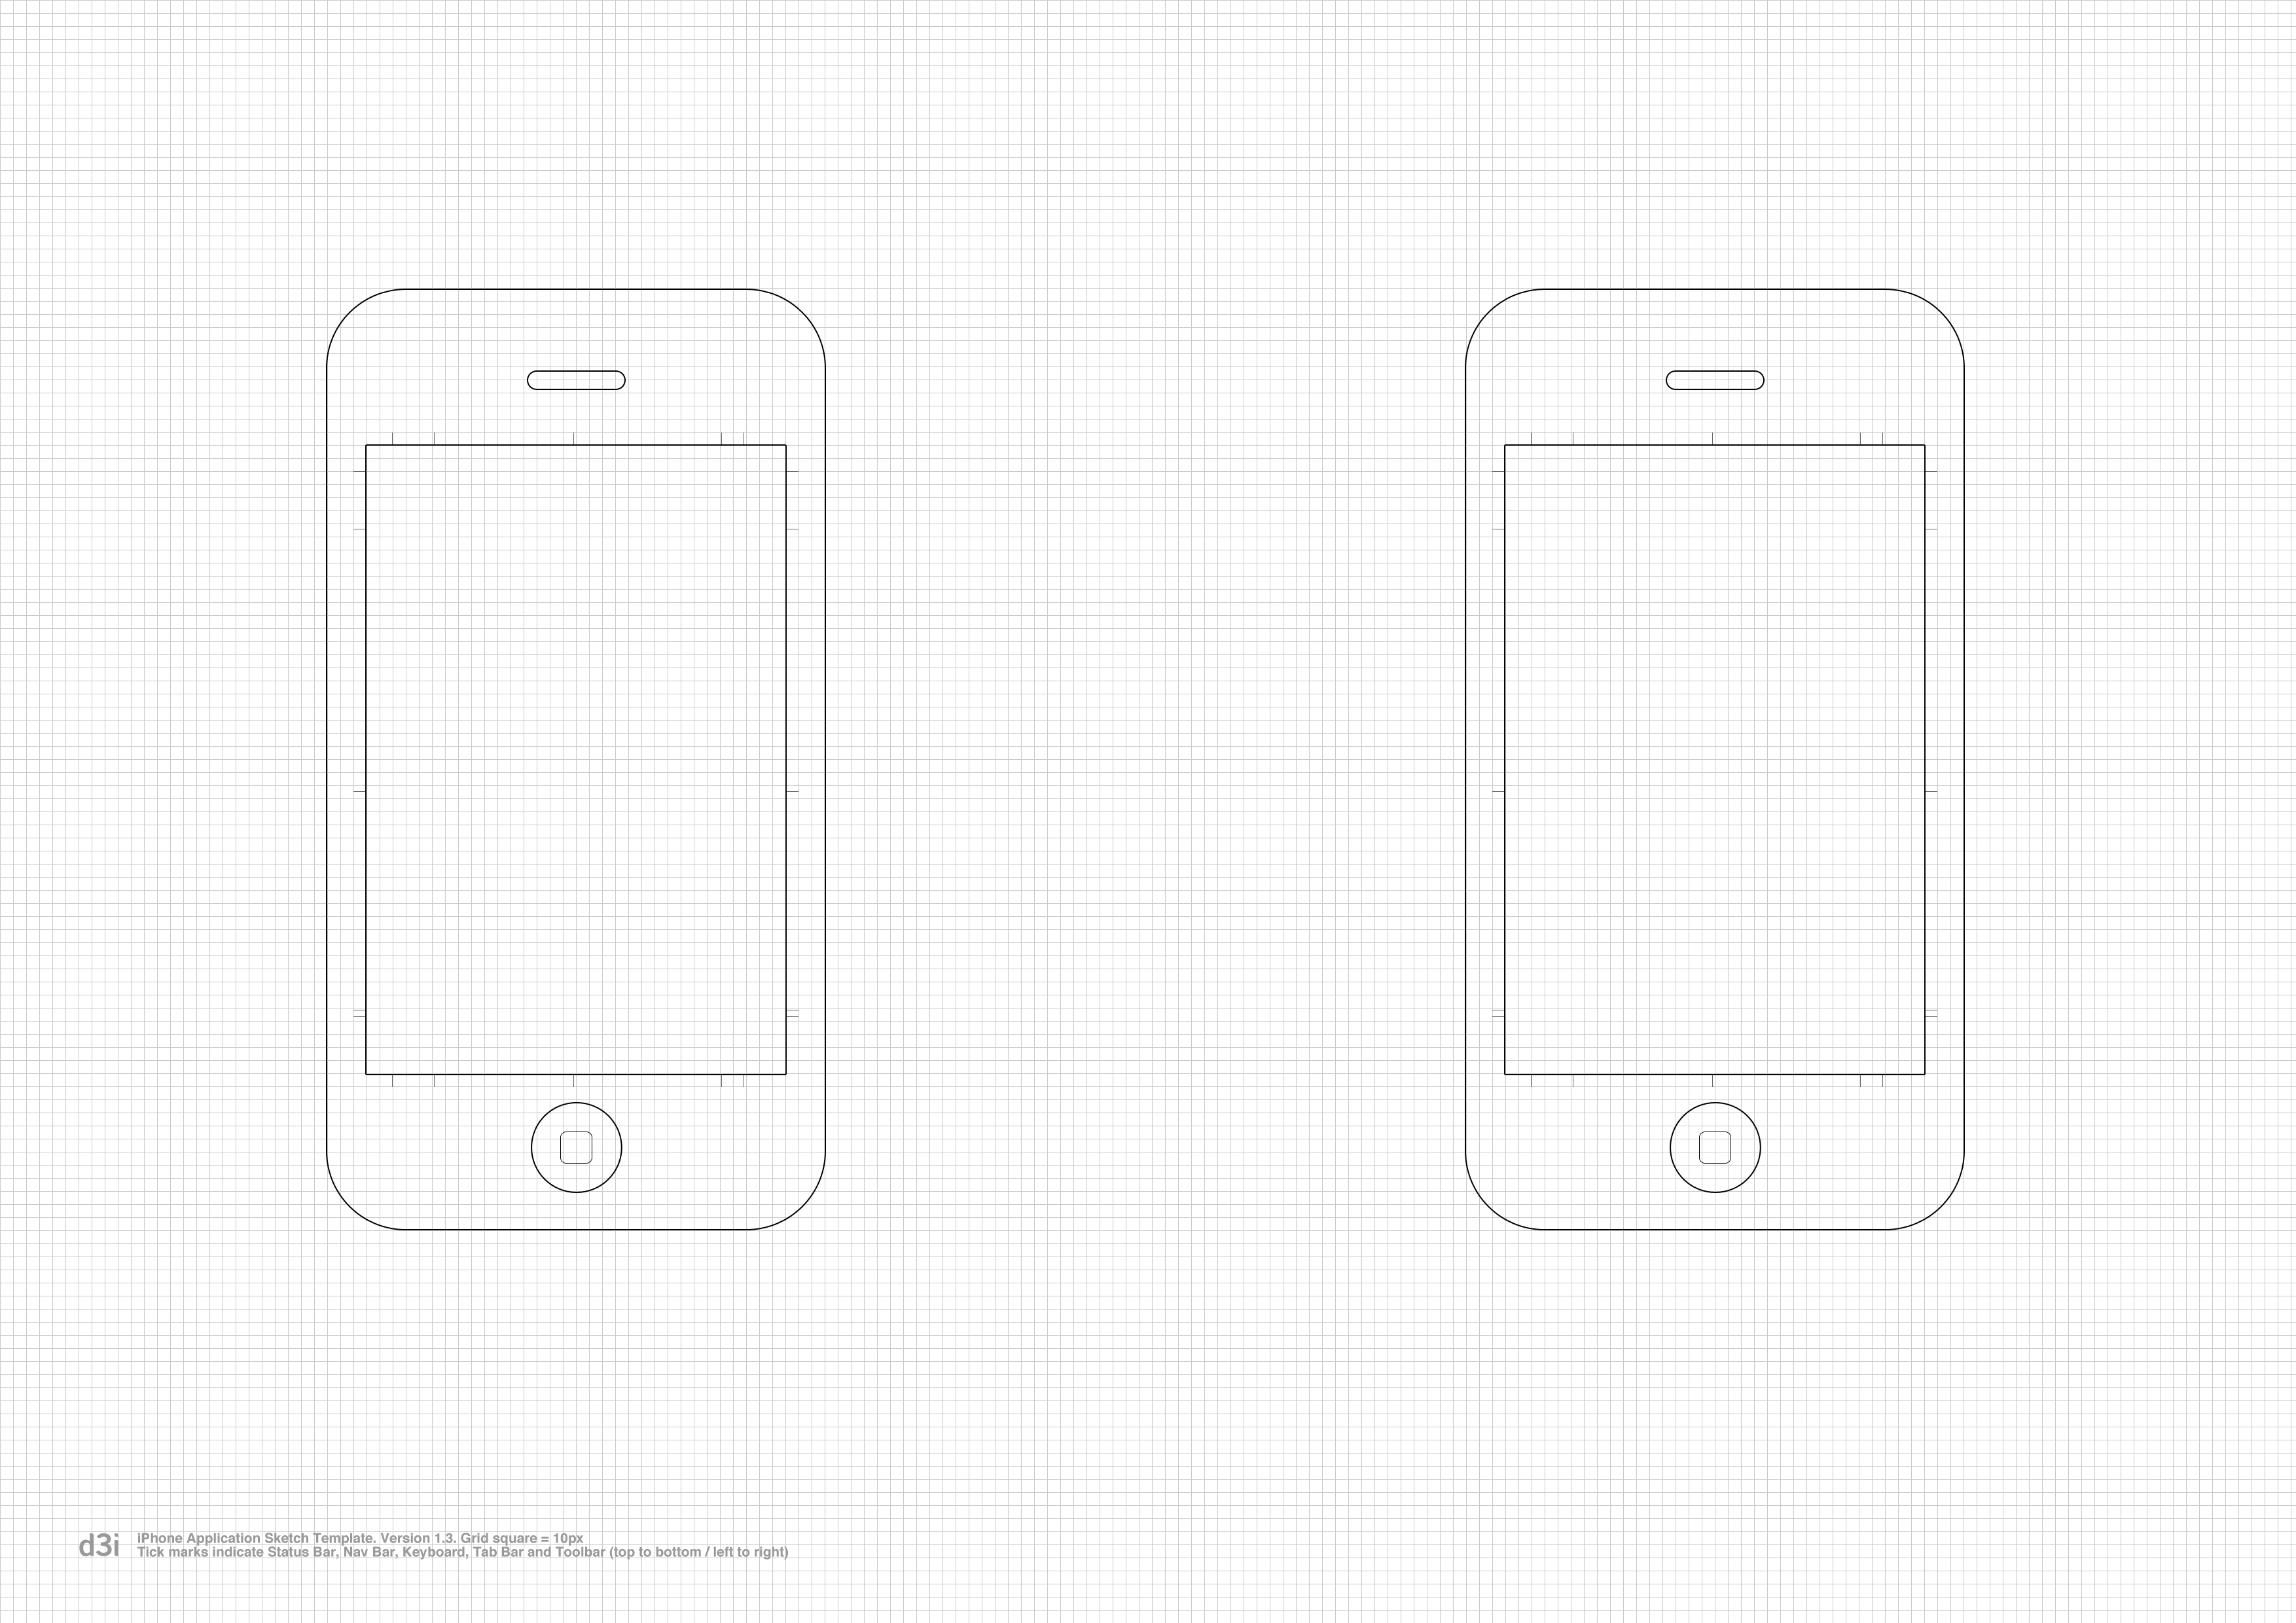 Iphone Application Sketch Template V1 3